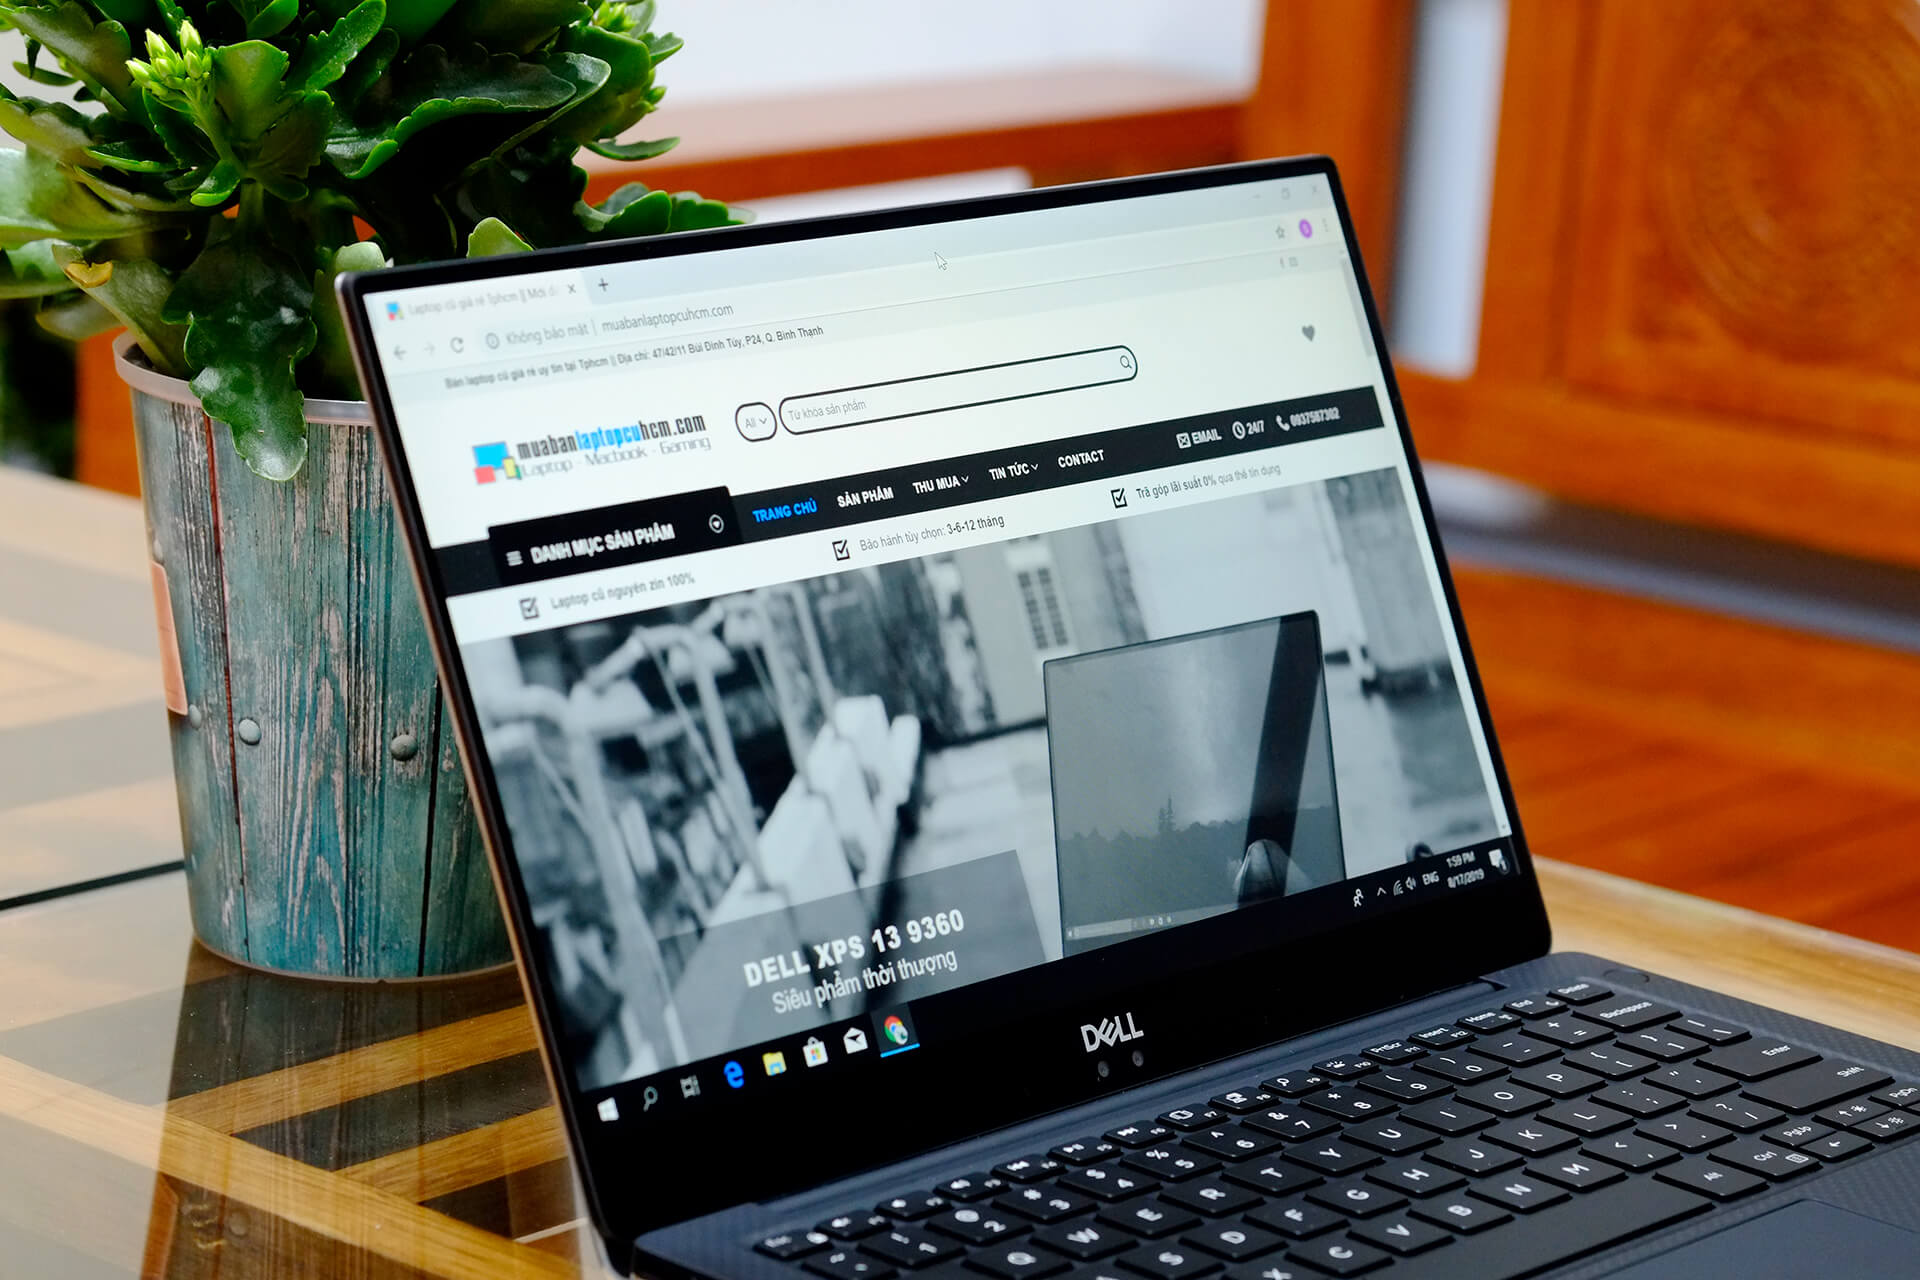 Dell Xps 9370 5